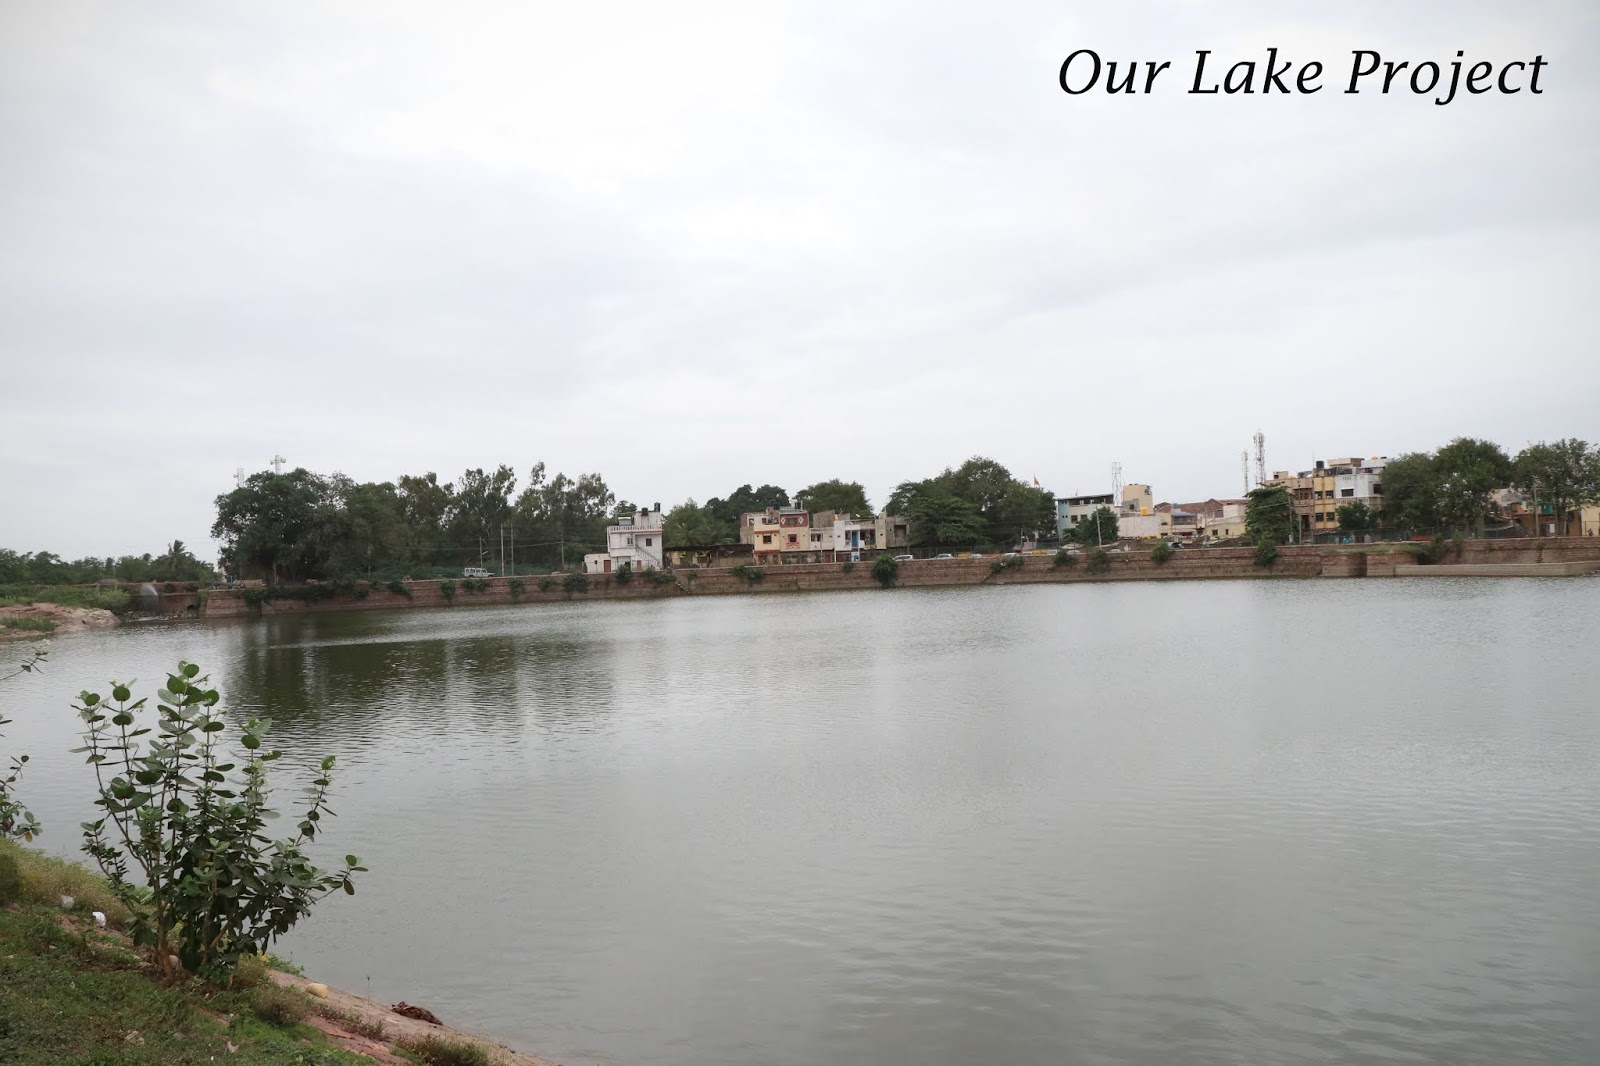 Our Lakes Project - Pailwan Buildcon Private Limited